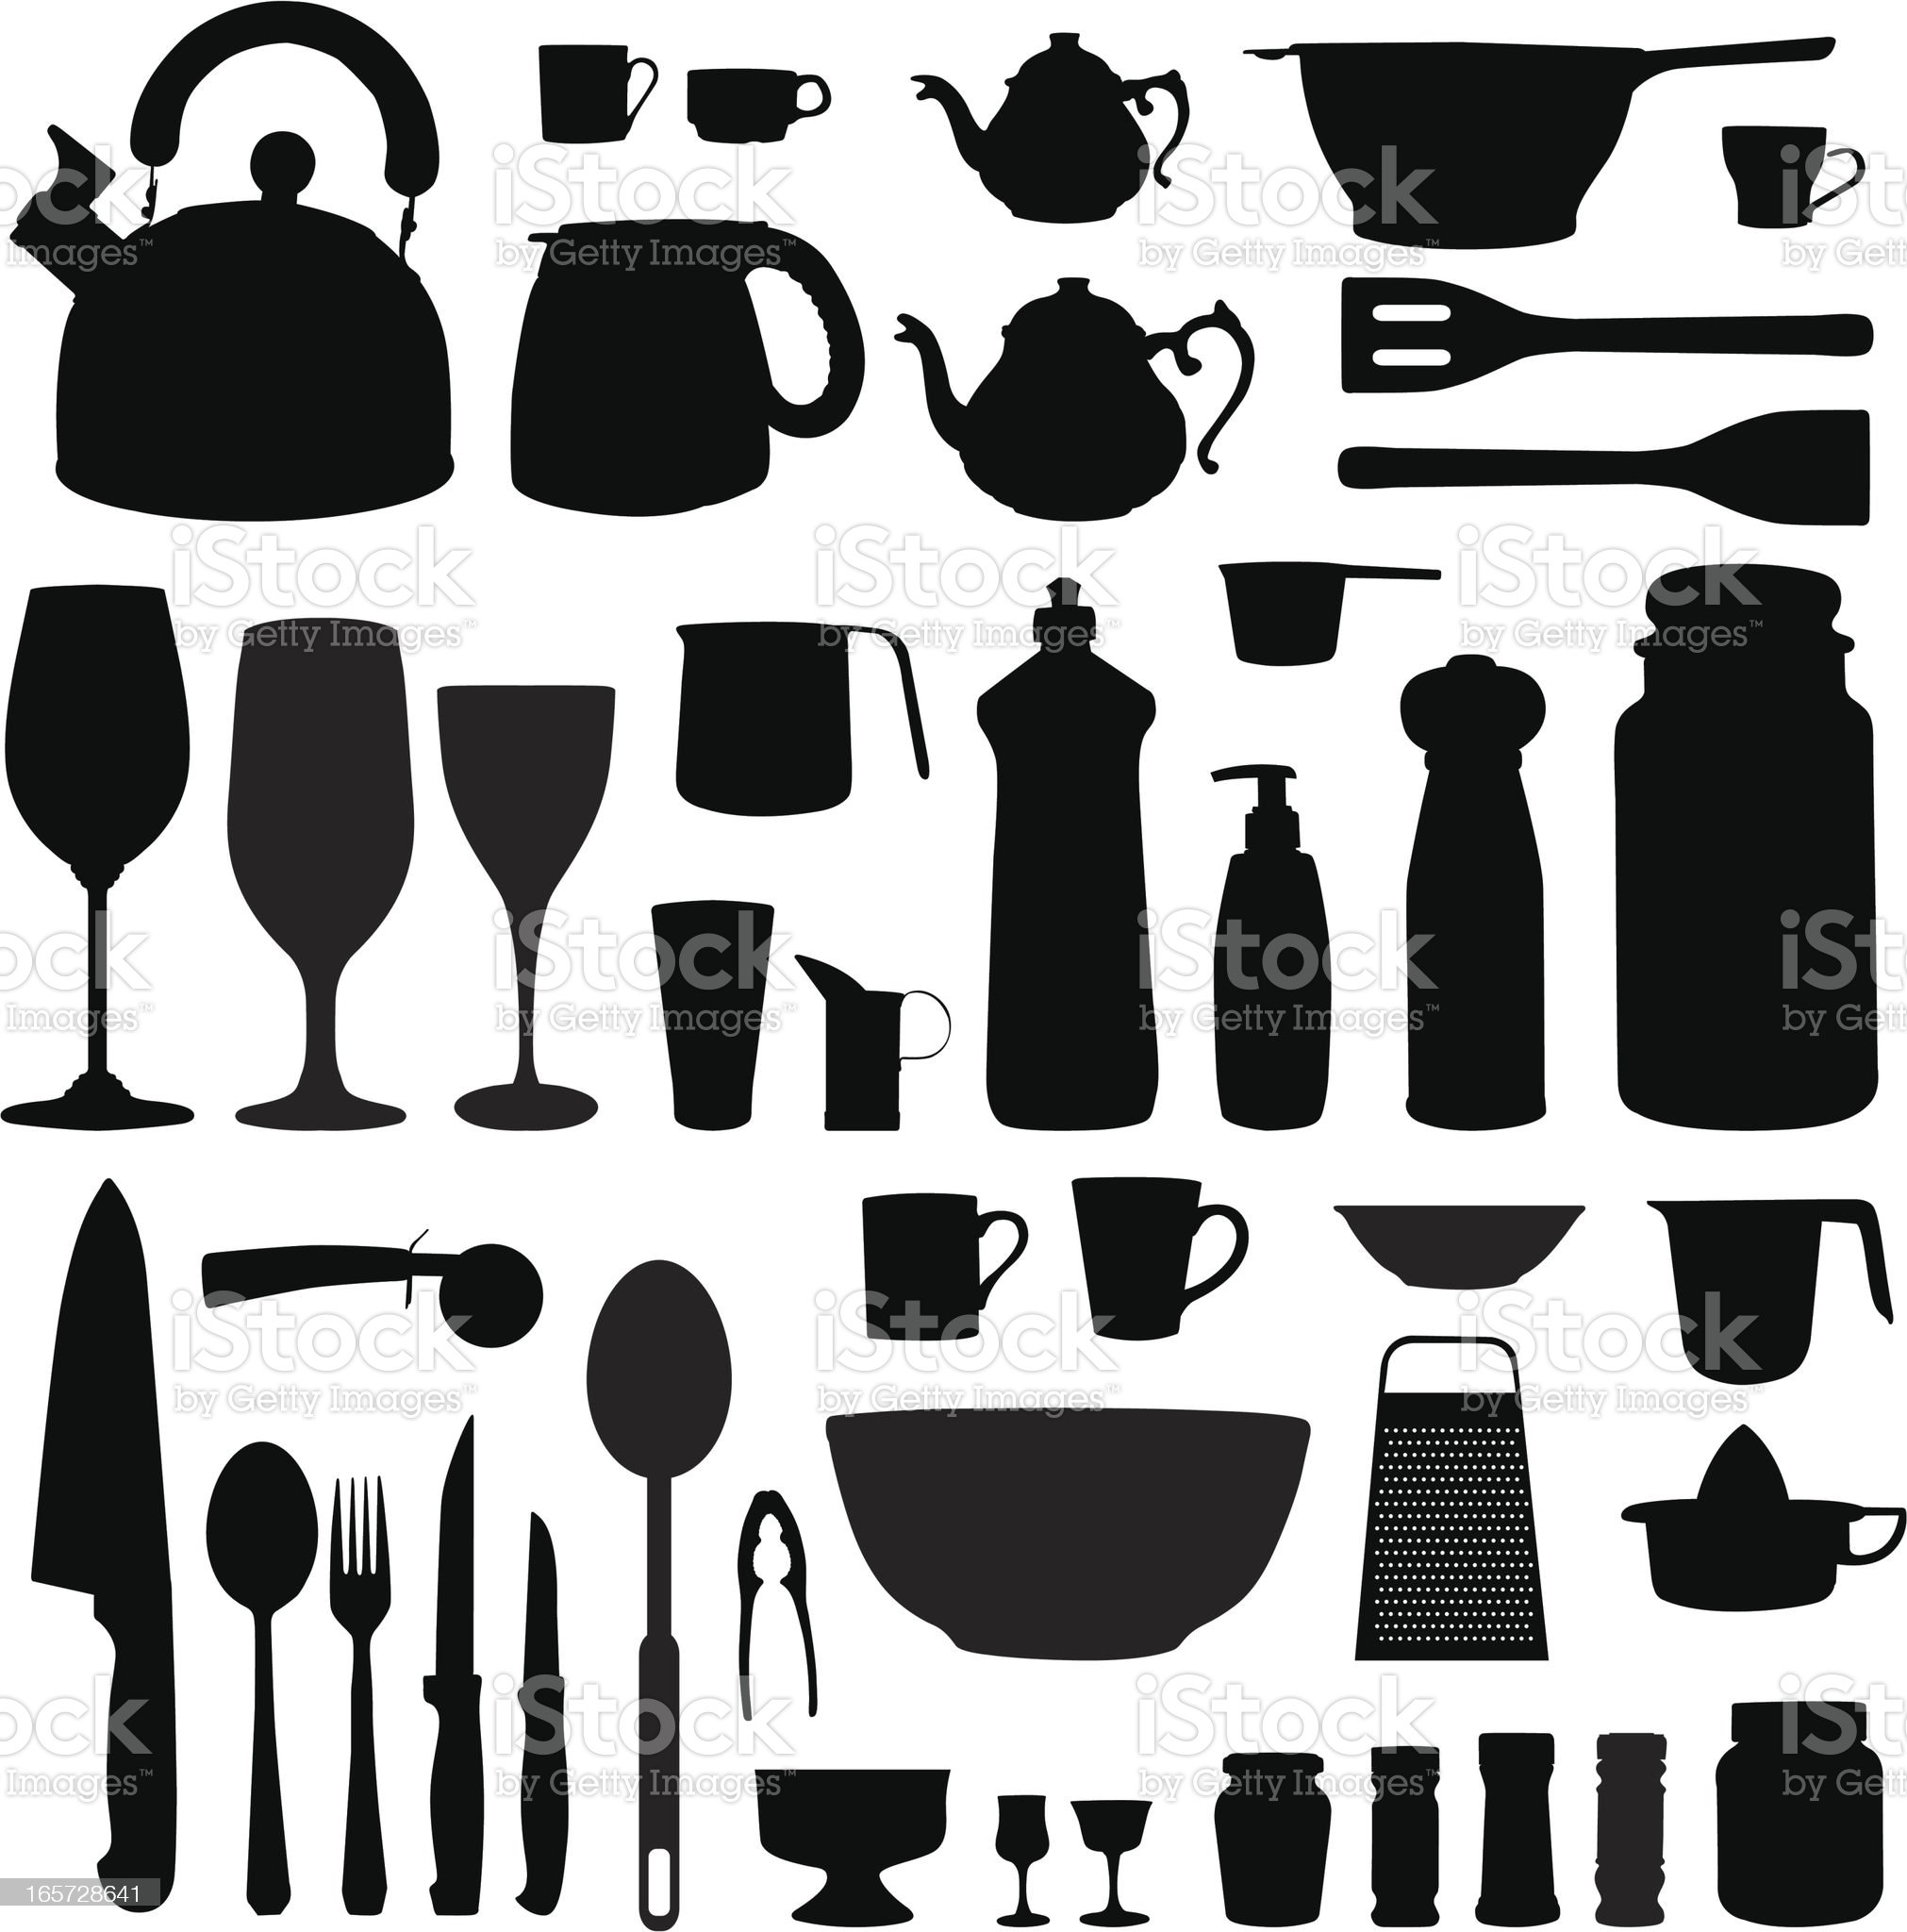 Kitchen equipment silhouettes set royalty-free stock vector art